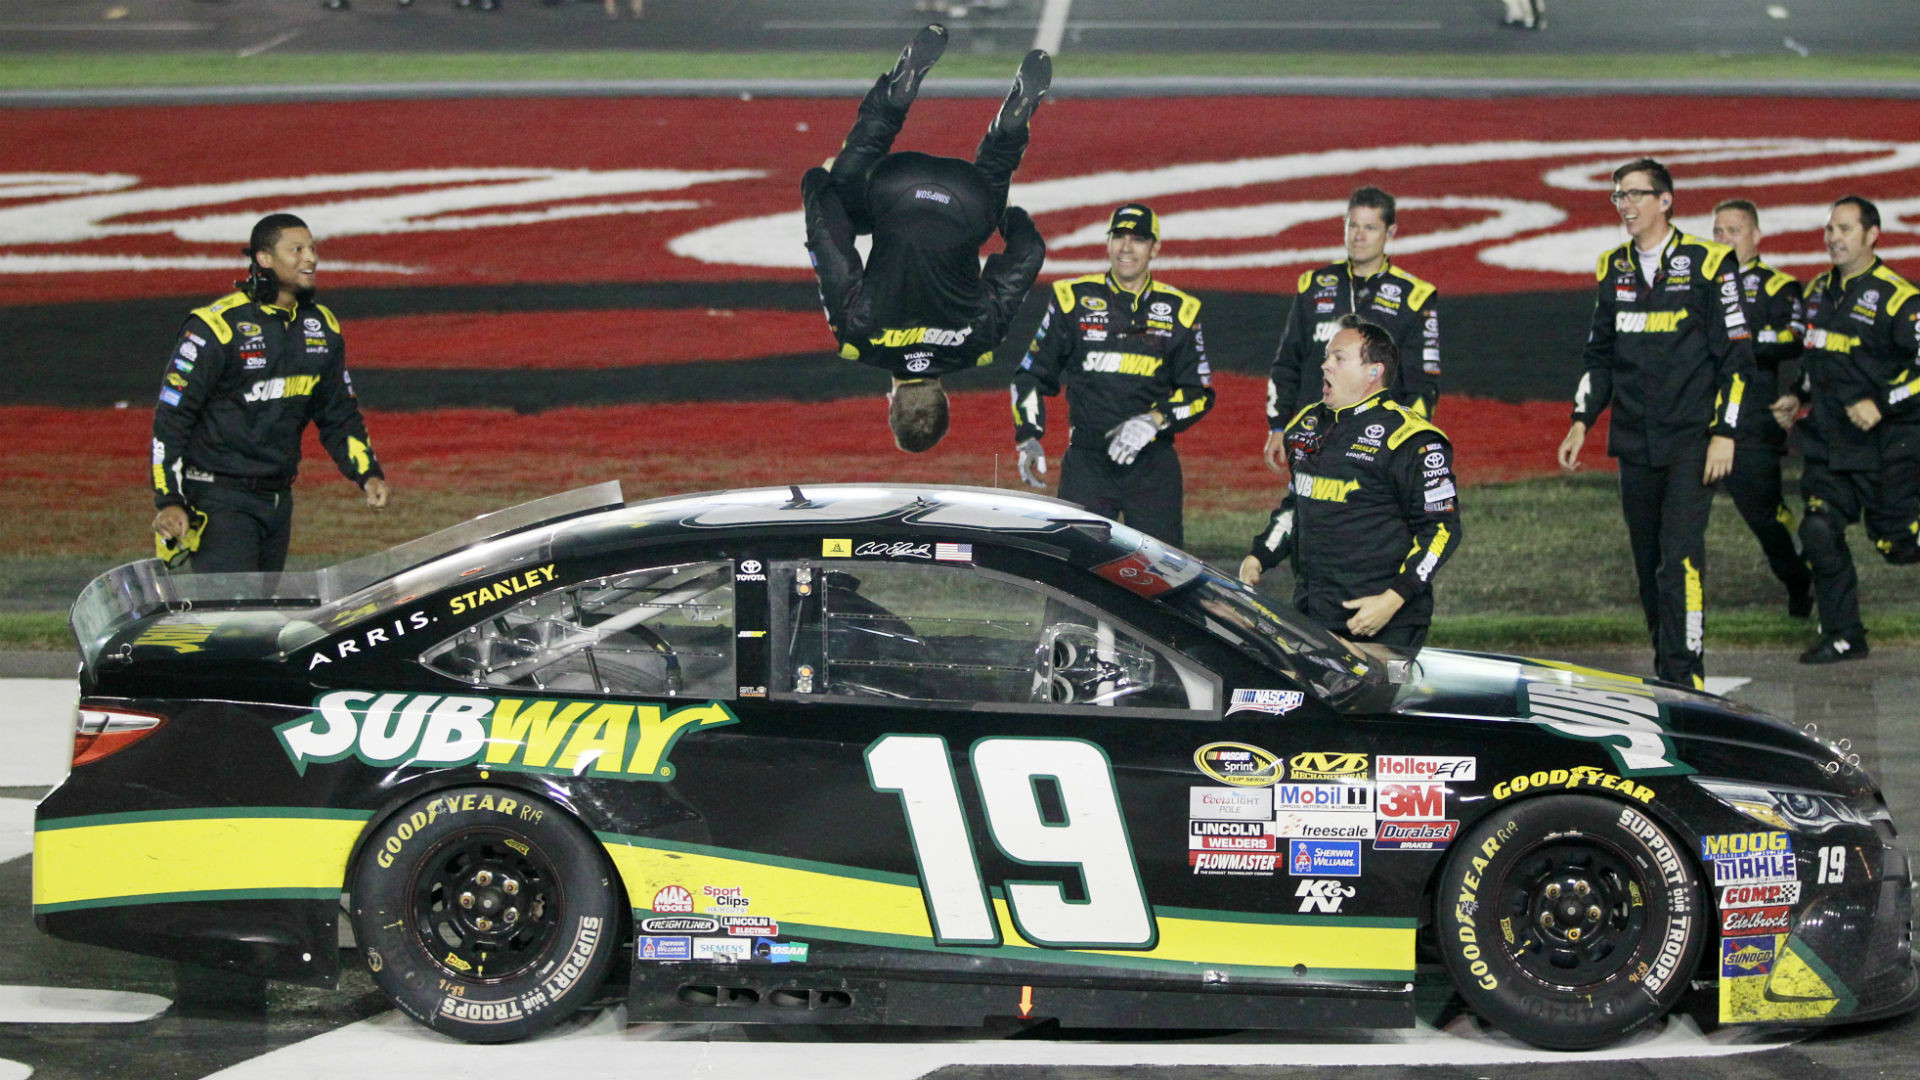 Res: 1920x1080, Winners & Losers: Carl Edwards doing backflips again after Coca-Cola 600 win